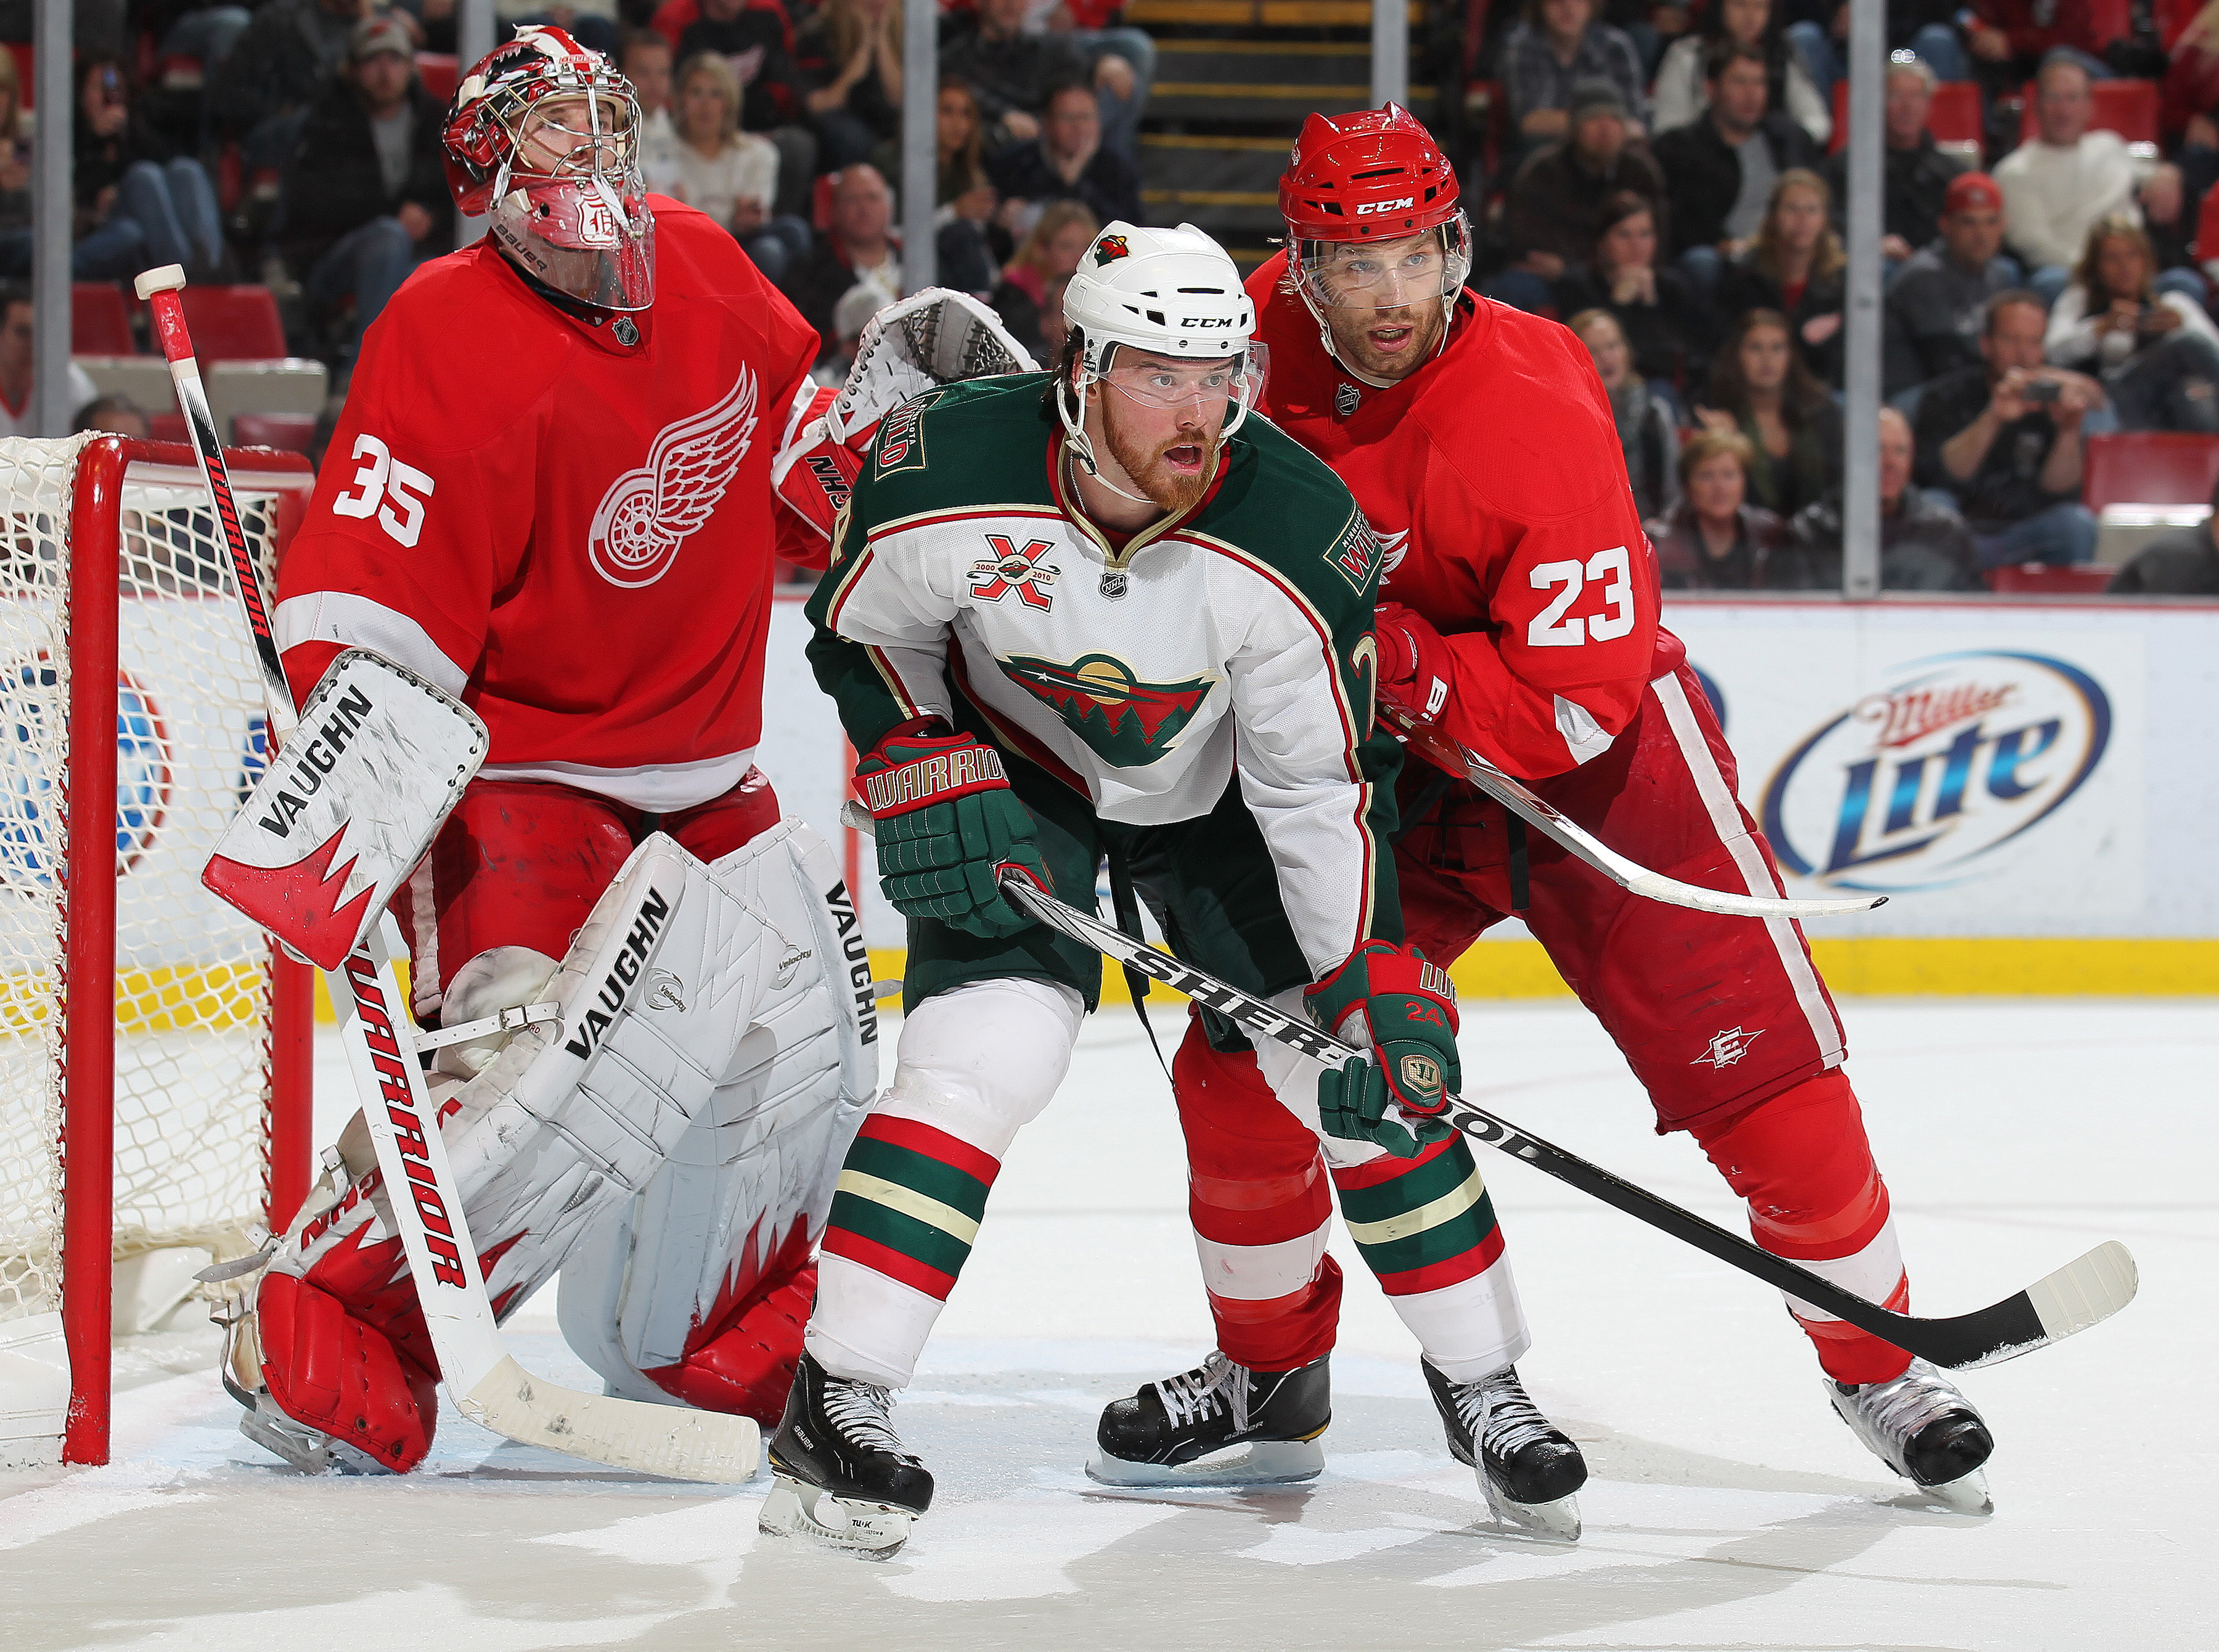 DETROIT,MI - NOVEMBER 19:  Martin Havlat #24 of the Minnesota Wild is held in check by Brad Stuart #23 of the Detroit Red Wings in a game on November 19, 2010 at the Joe Louis Arena in Detroit, Michigan. The Wild defeated the Wings 4-3 in overtime. (Photo